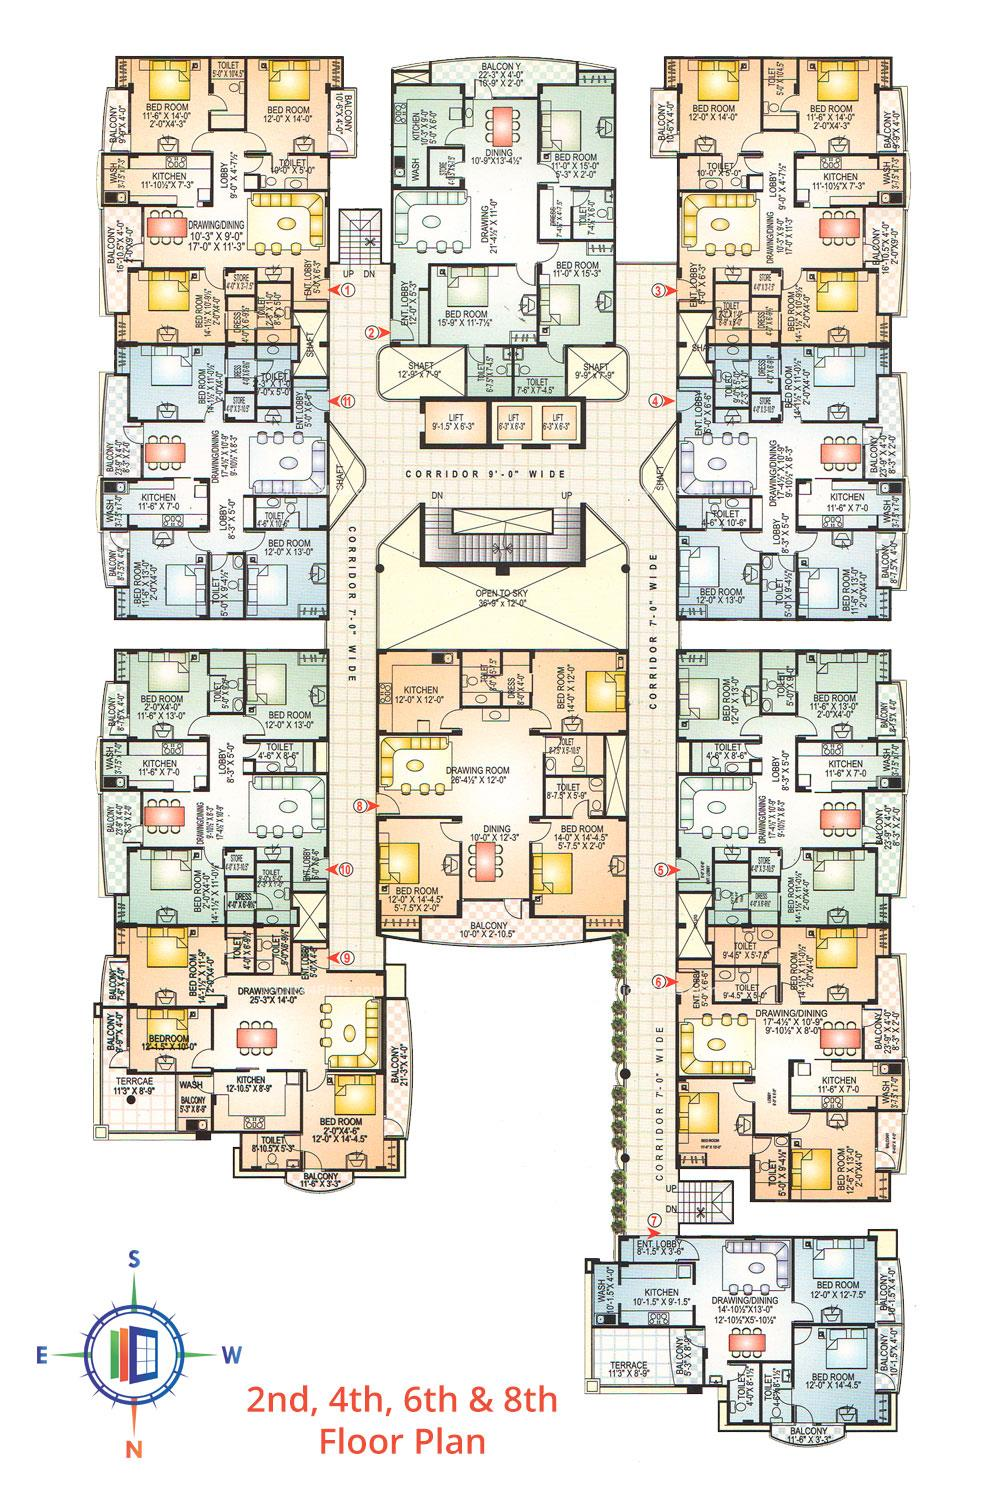 KK Tower 2nd, 4th, 6th & 8th Floor Plan